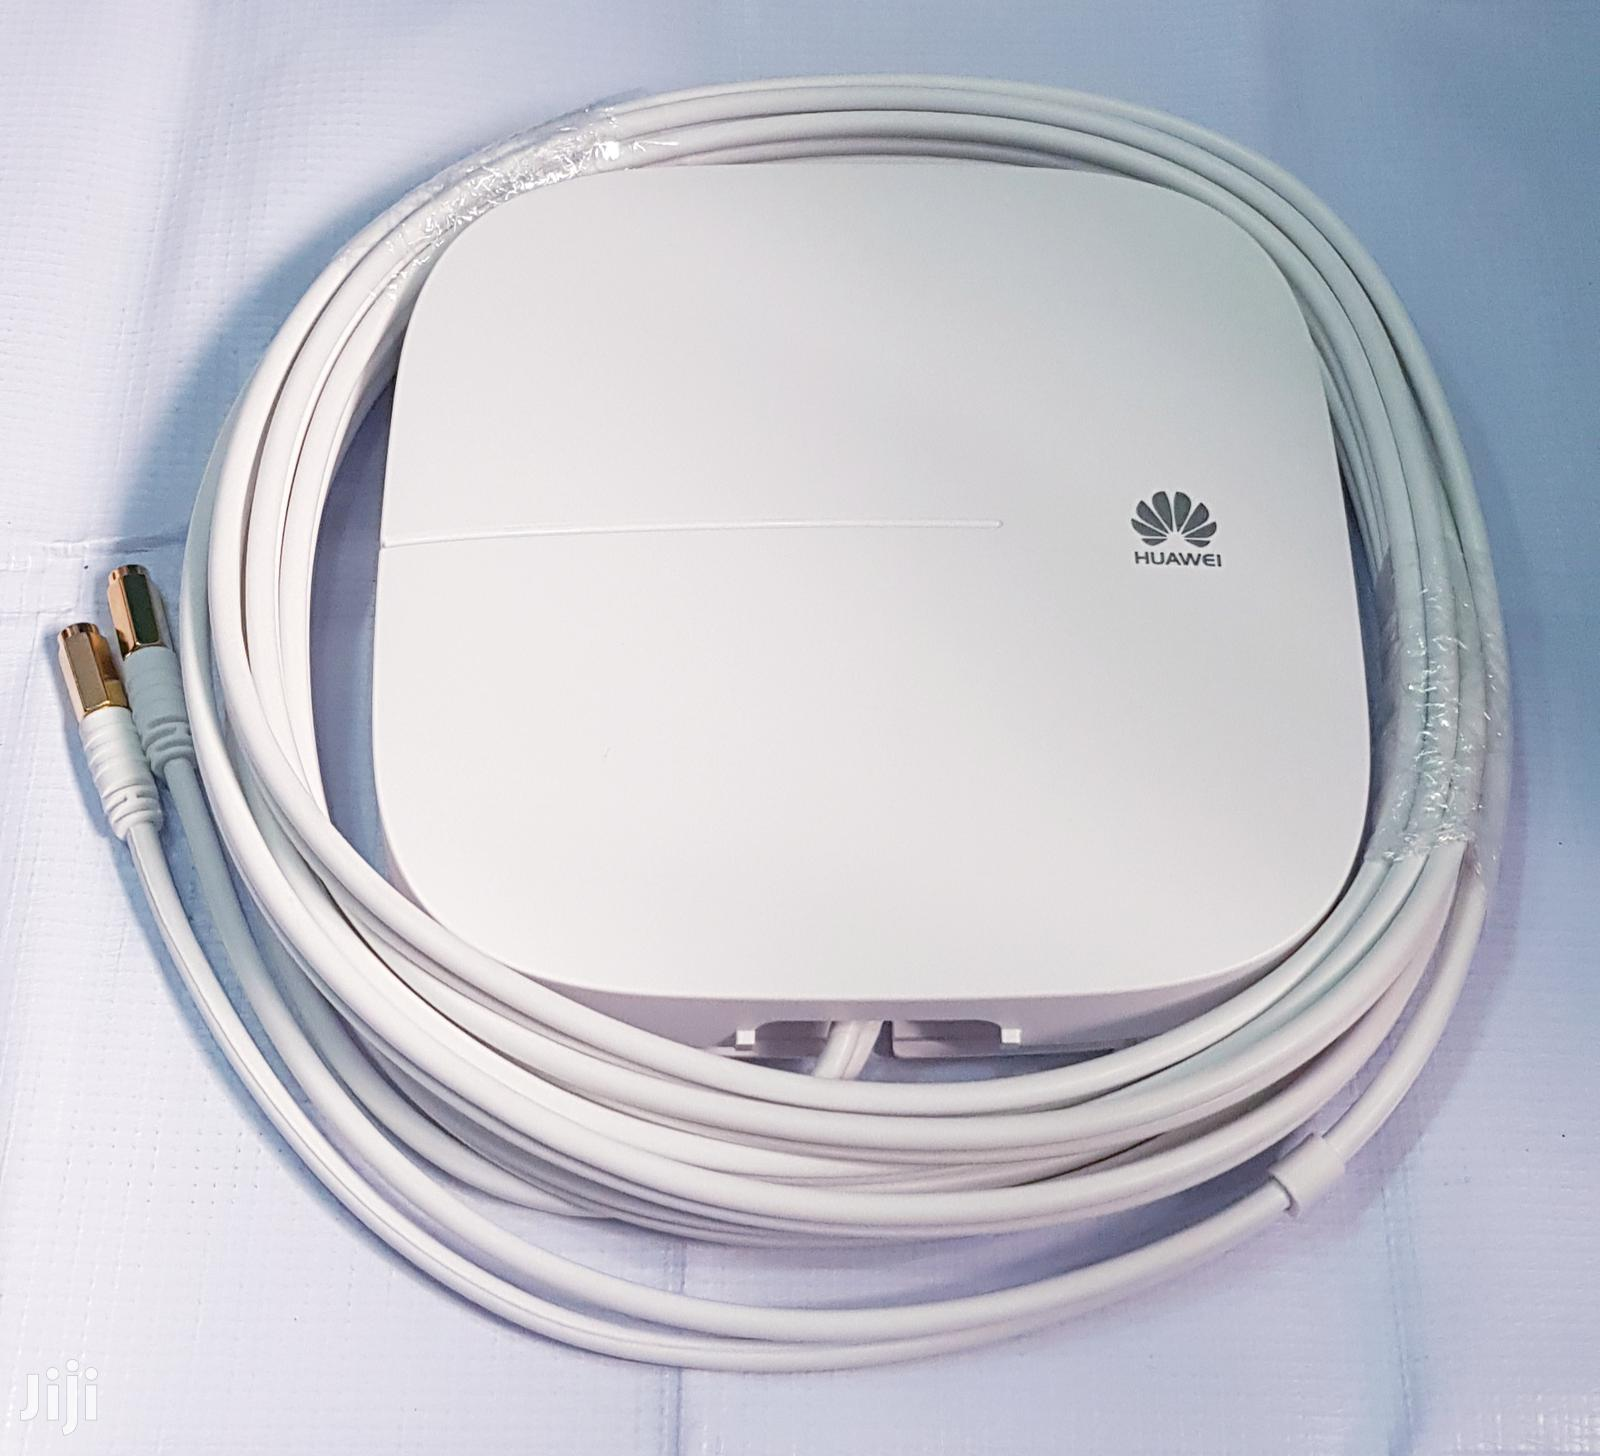 Archive: Huawei AF78 Indoor/Outdoor Double-cabled Antenna For All LTE Bands